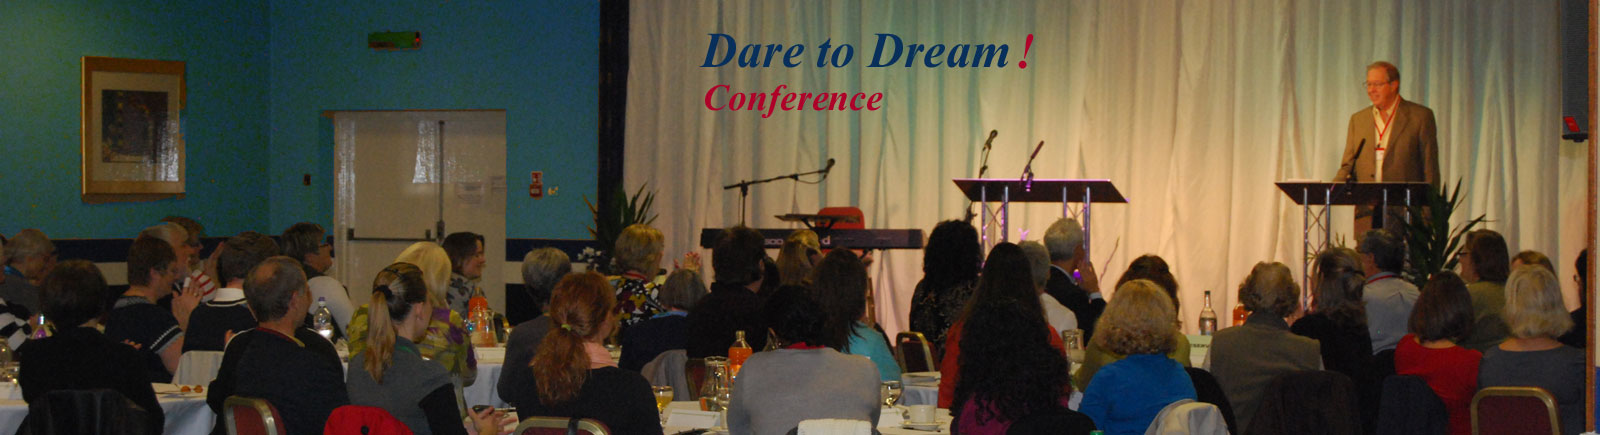 Dare to Dream Conference 2016 header